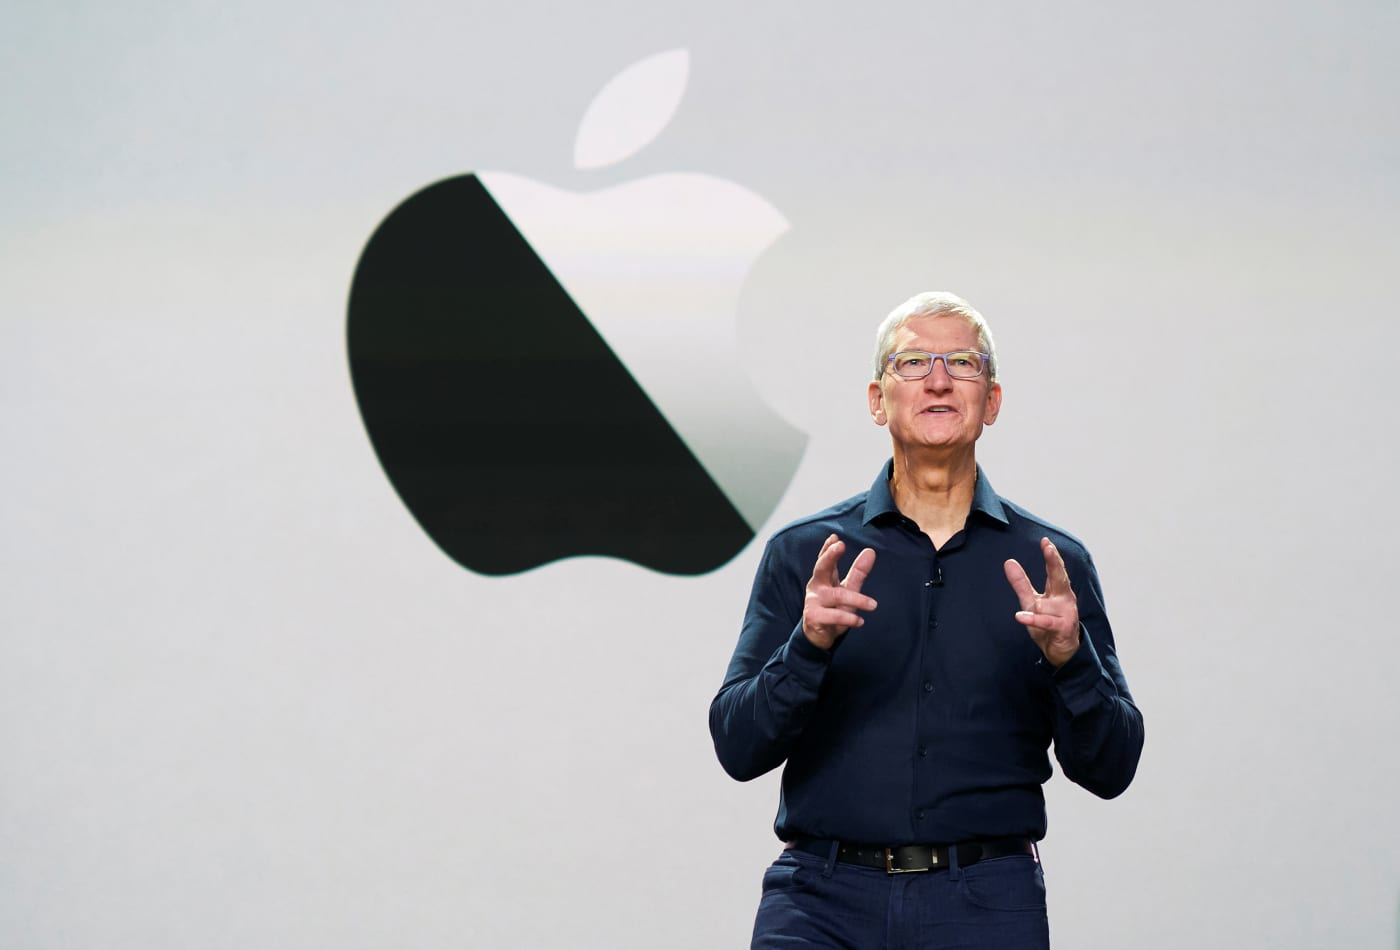 Tim Cook says Apple buys innovation, not competitors